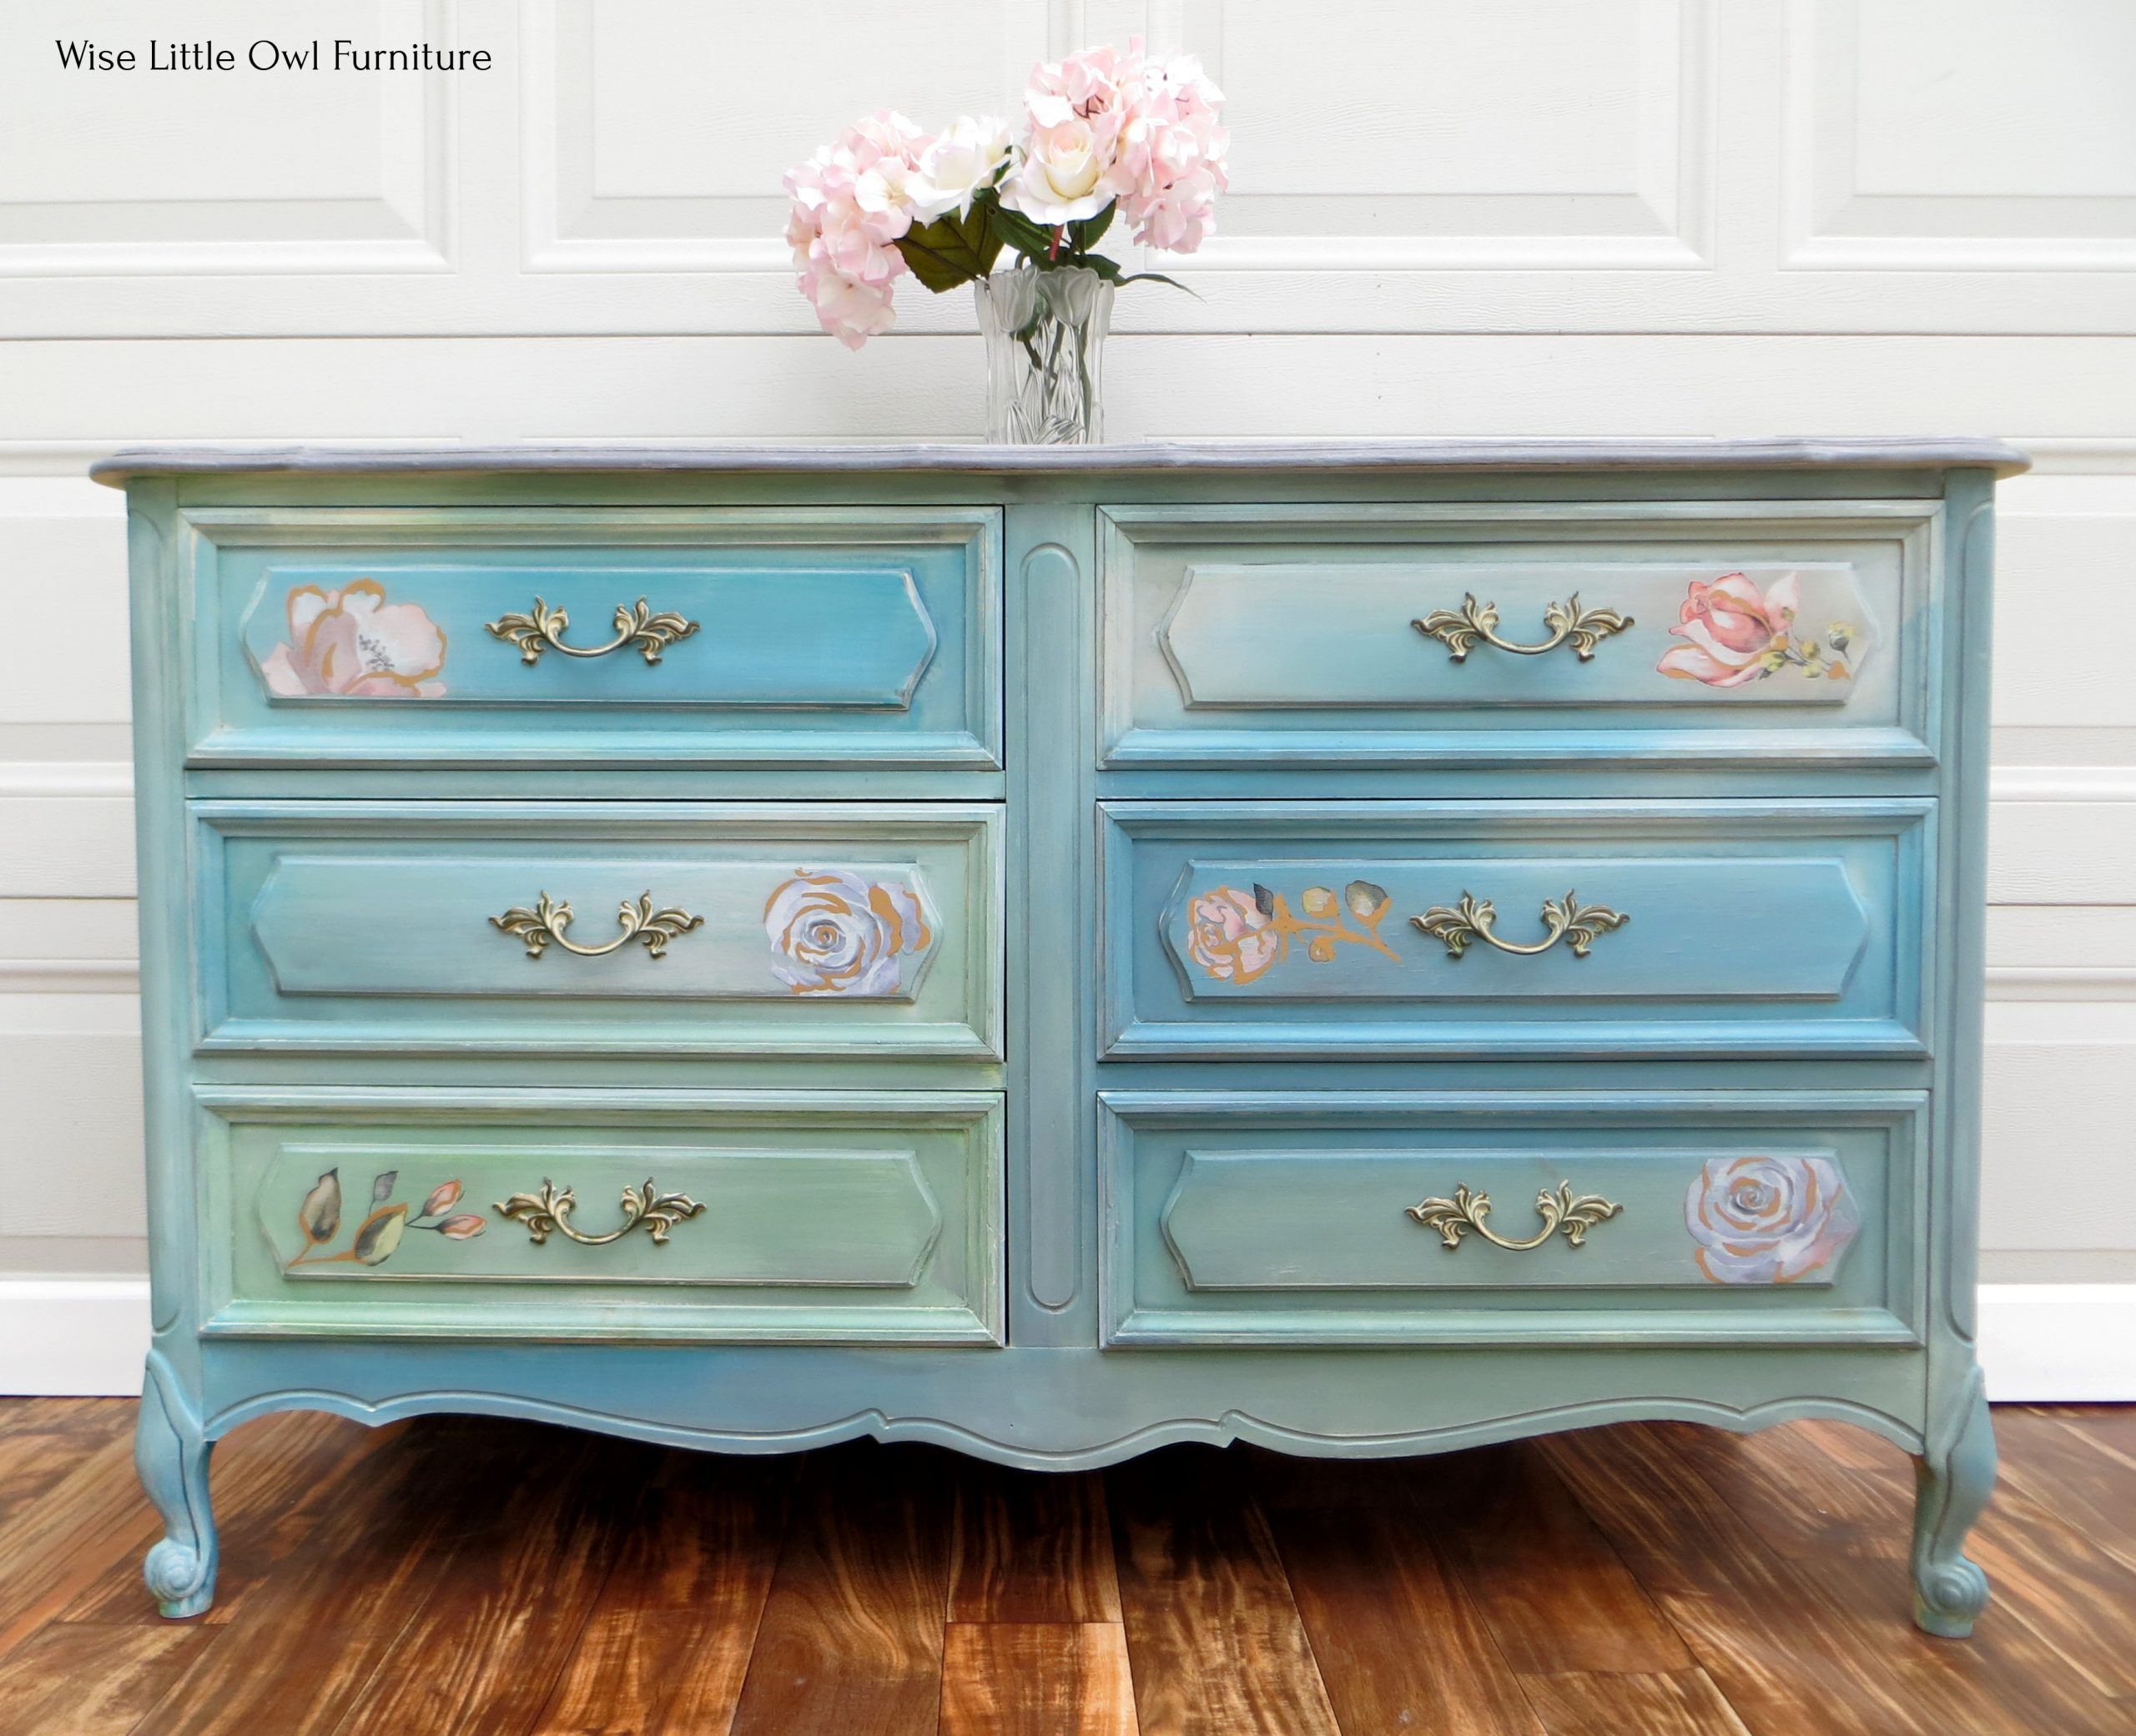 French Provincial Bedroom Furniture Makeover Wise Little Owl Furniture